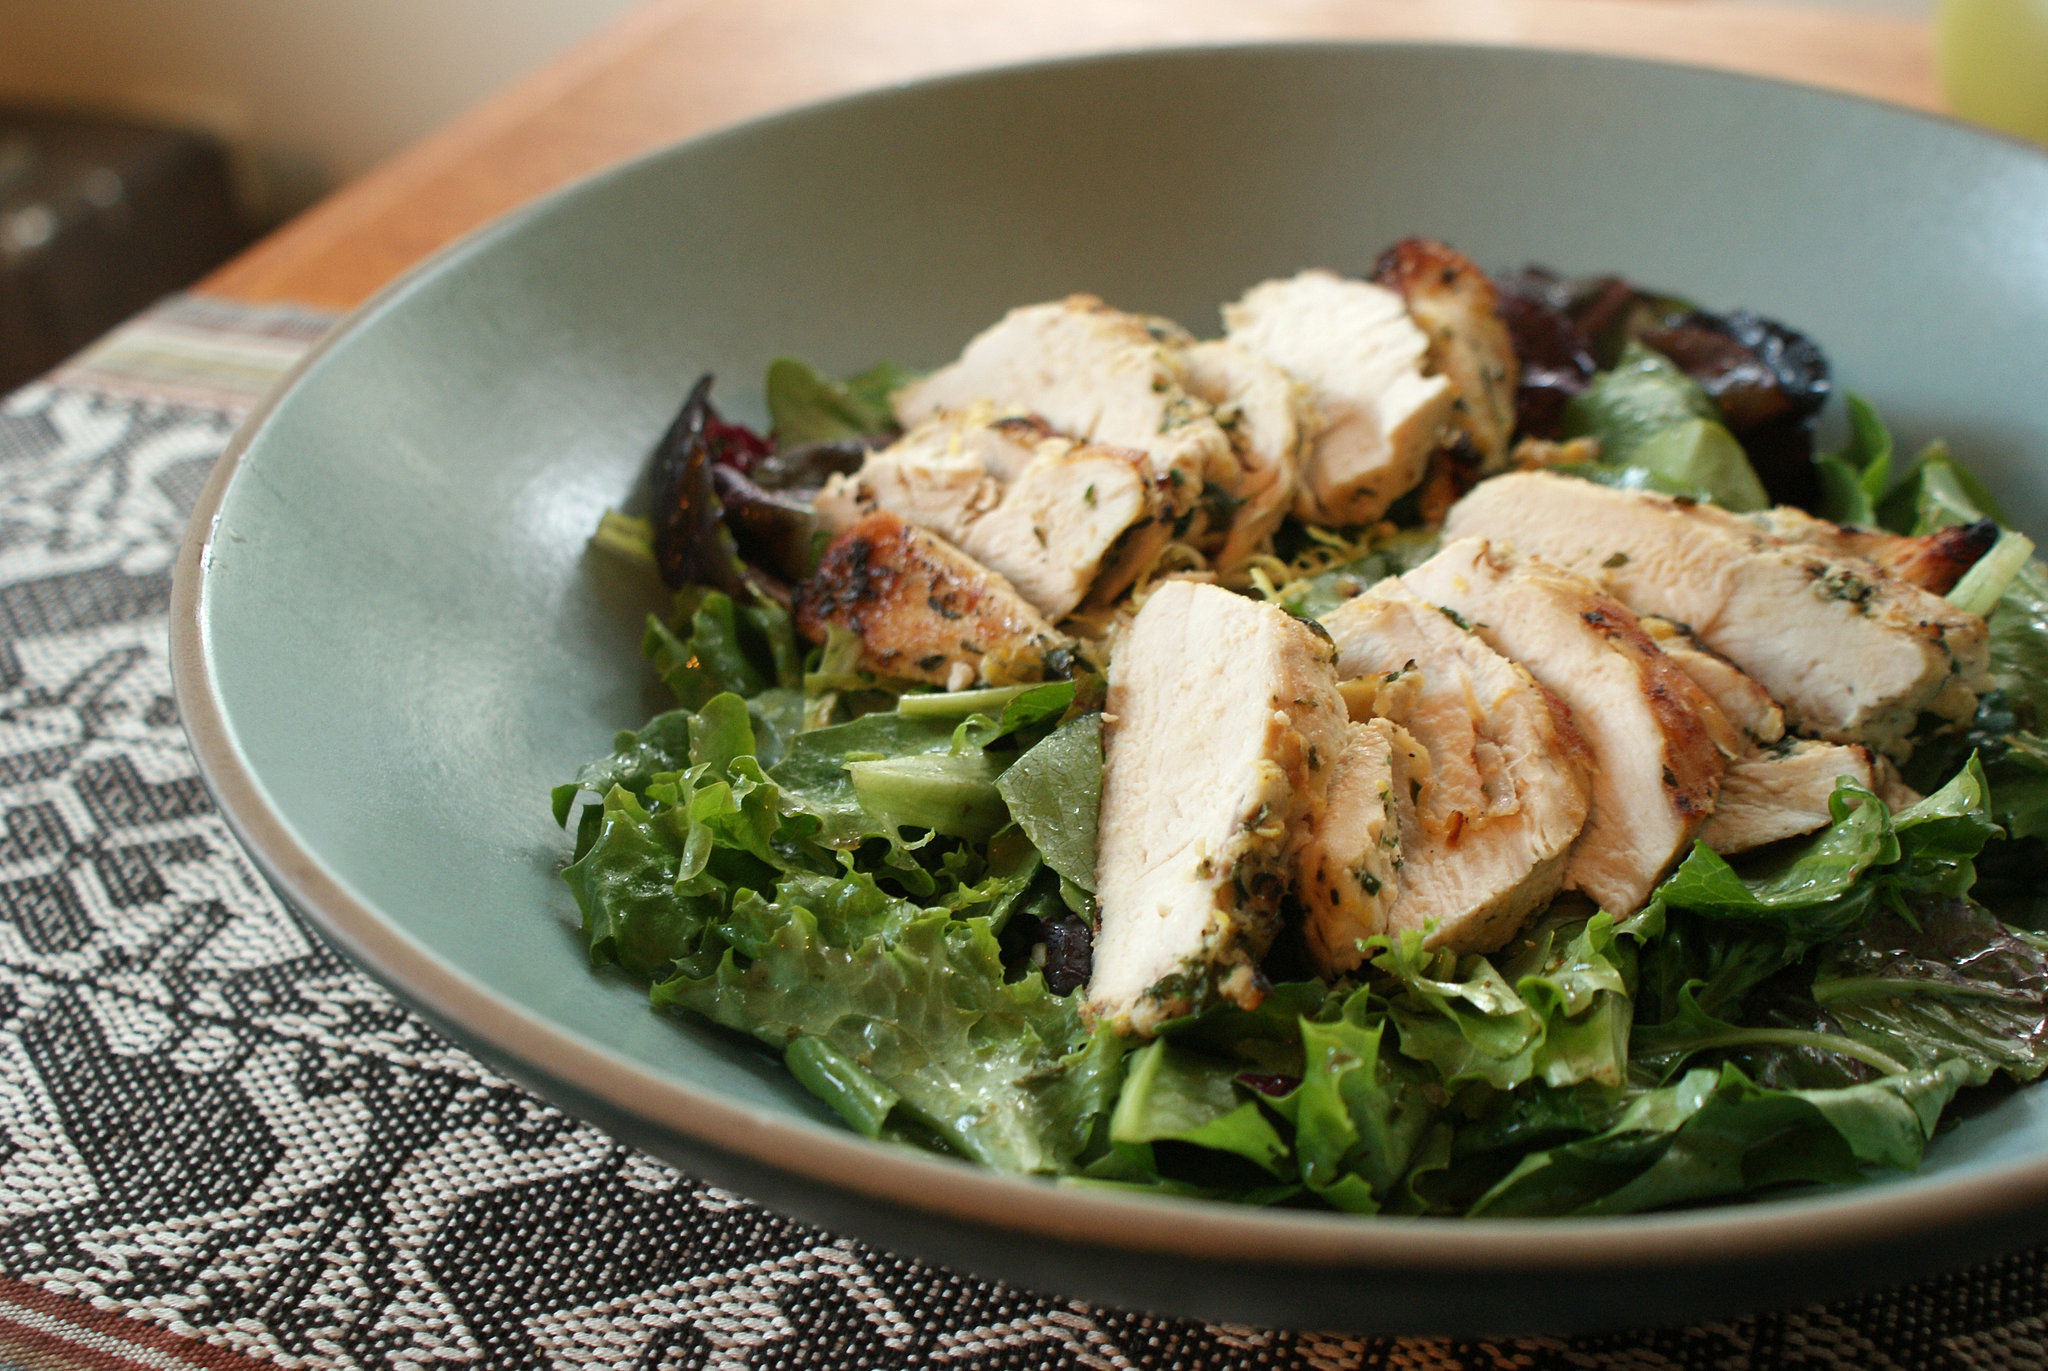 Grilled Chicken Salad With Herb Vinaigrette